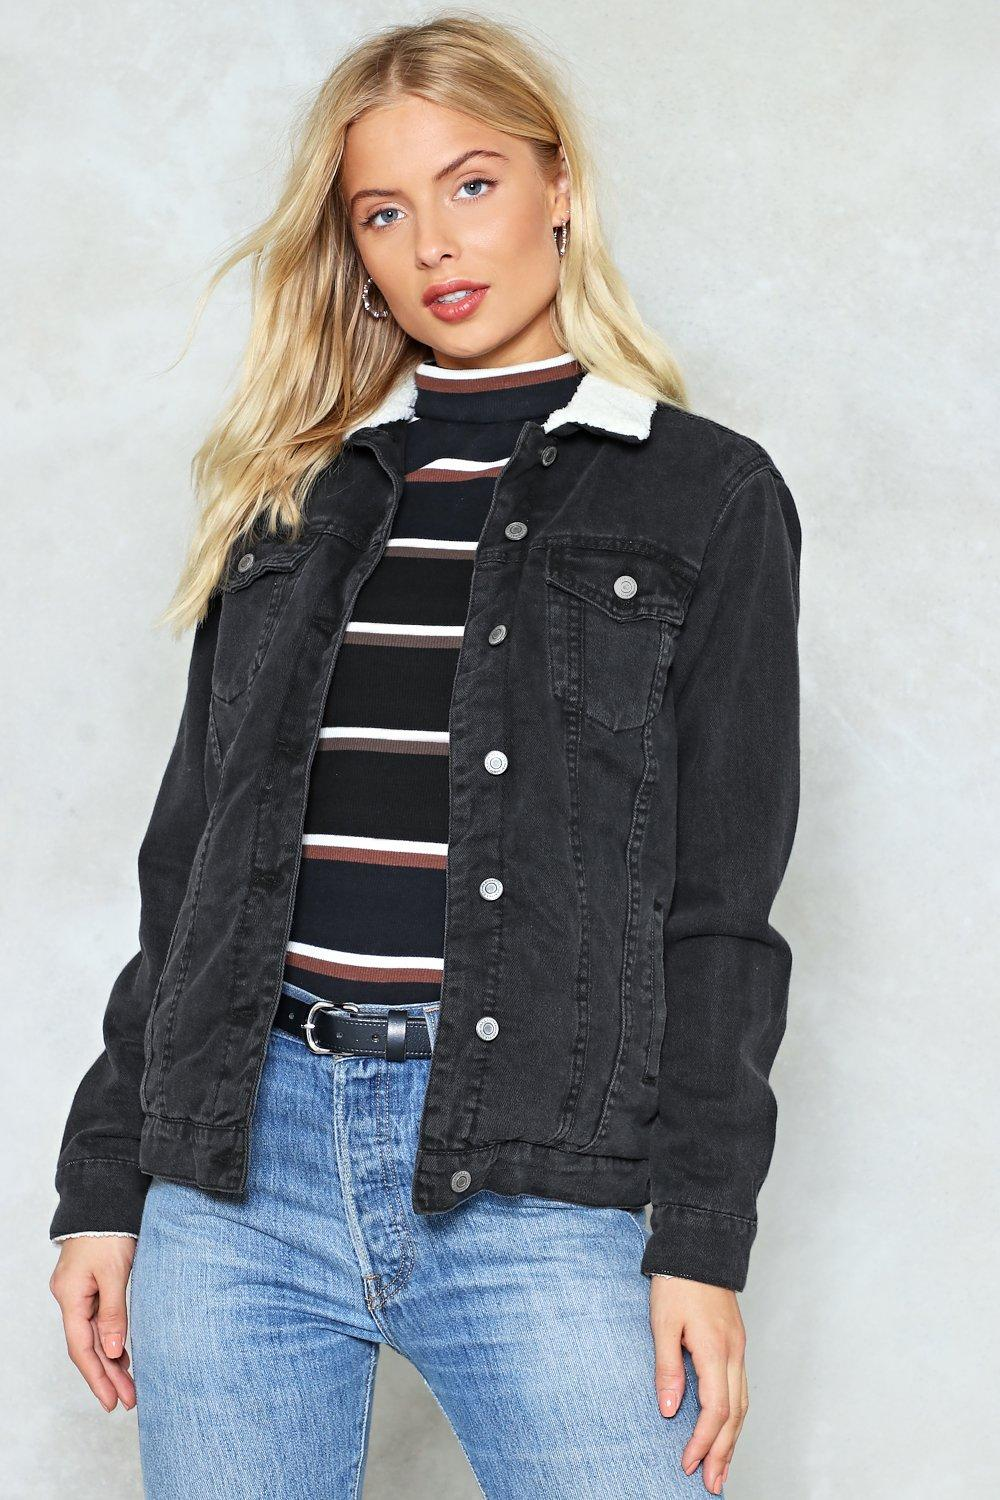 bdfb127ed2d3f Borg Collar Denim Jacket | Shop Clothes at Nasty Gal!